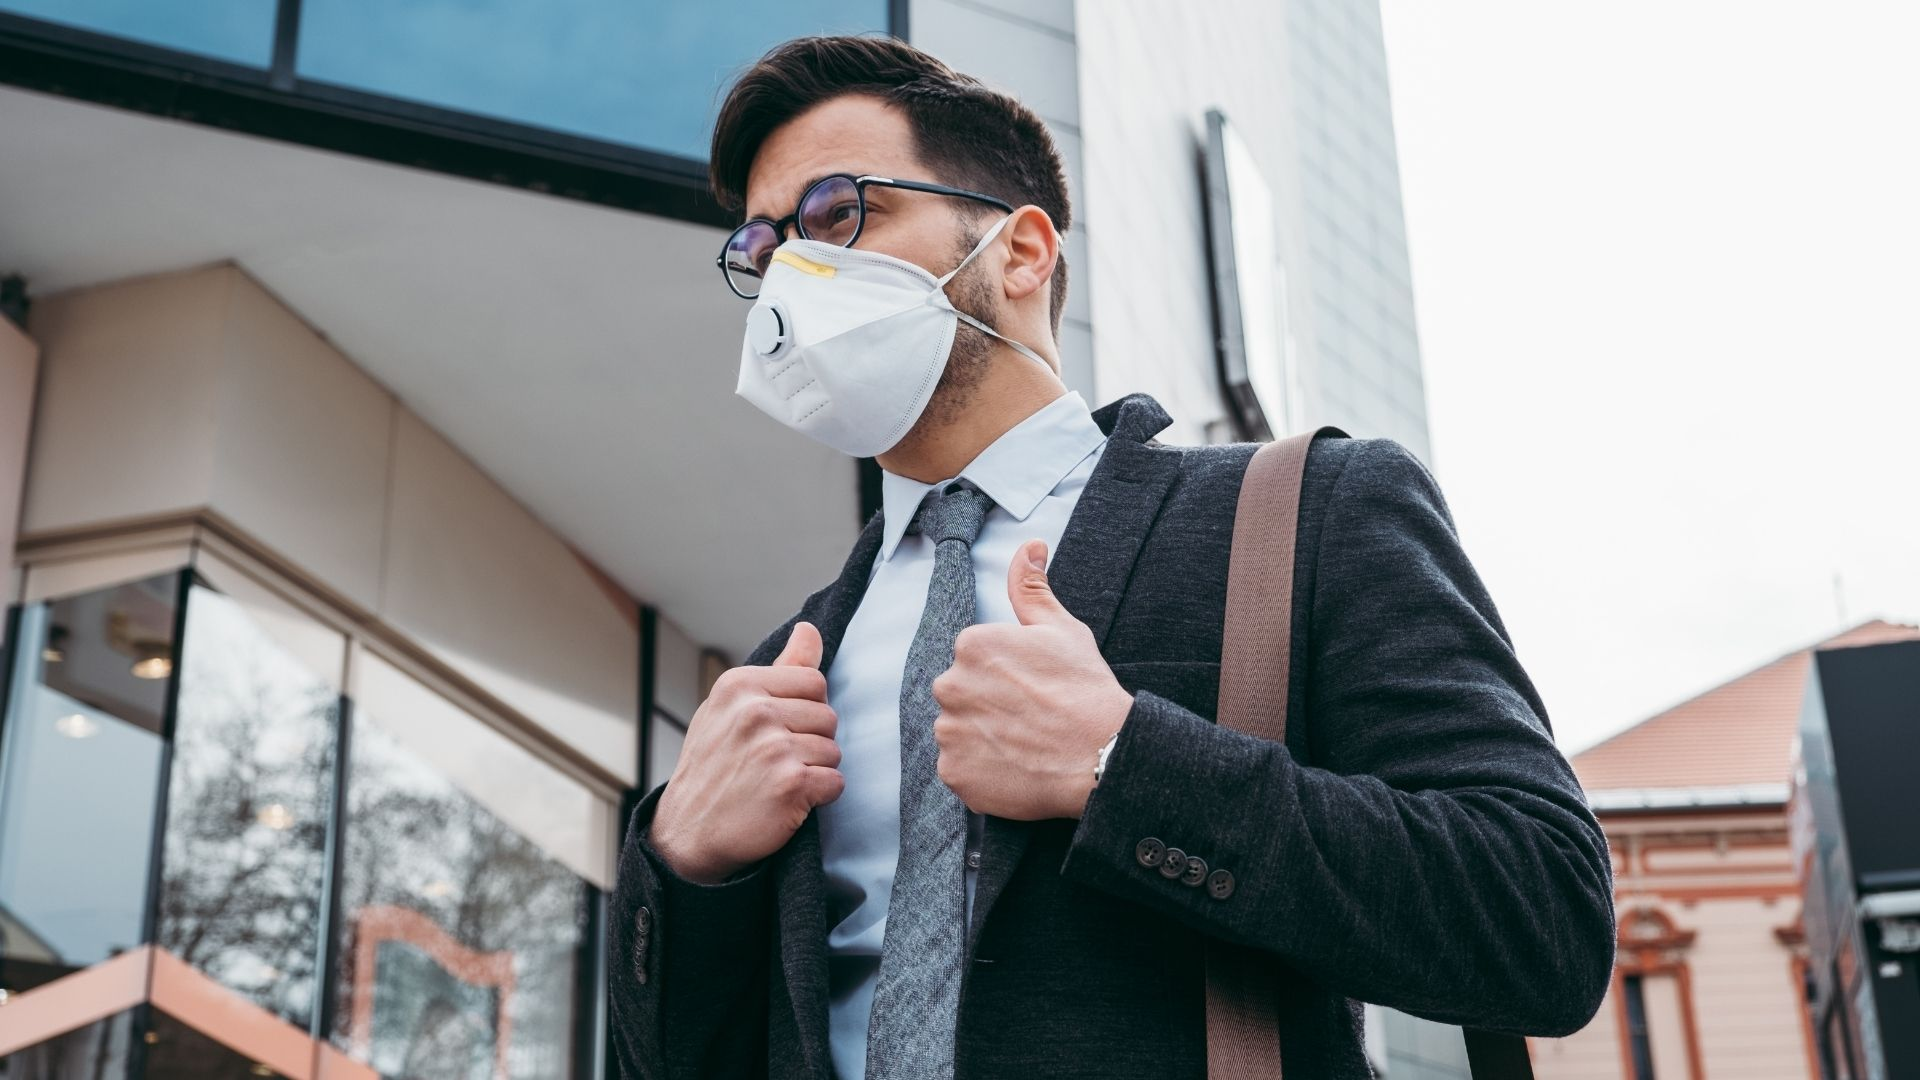 Learning from the pandemic 11